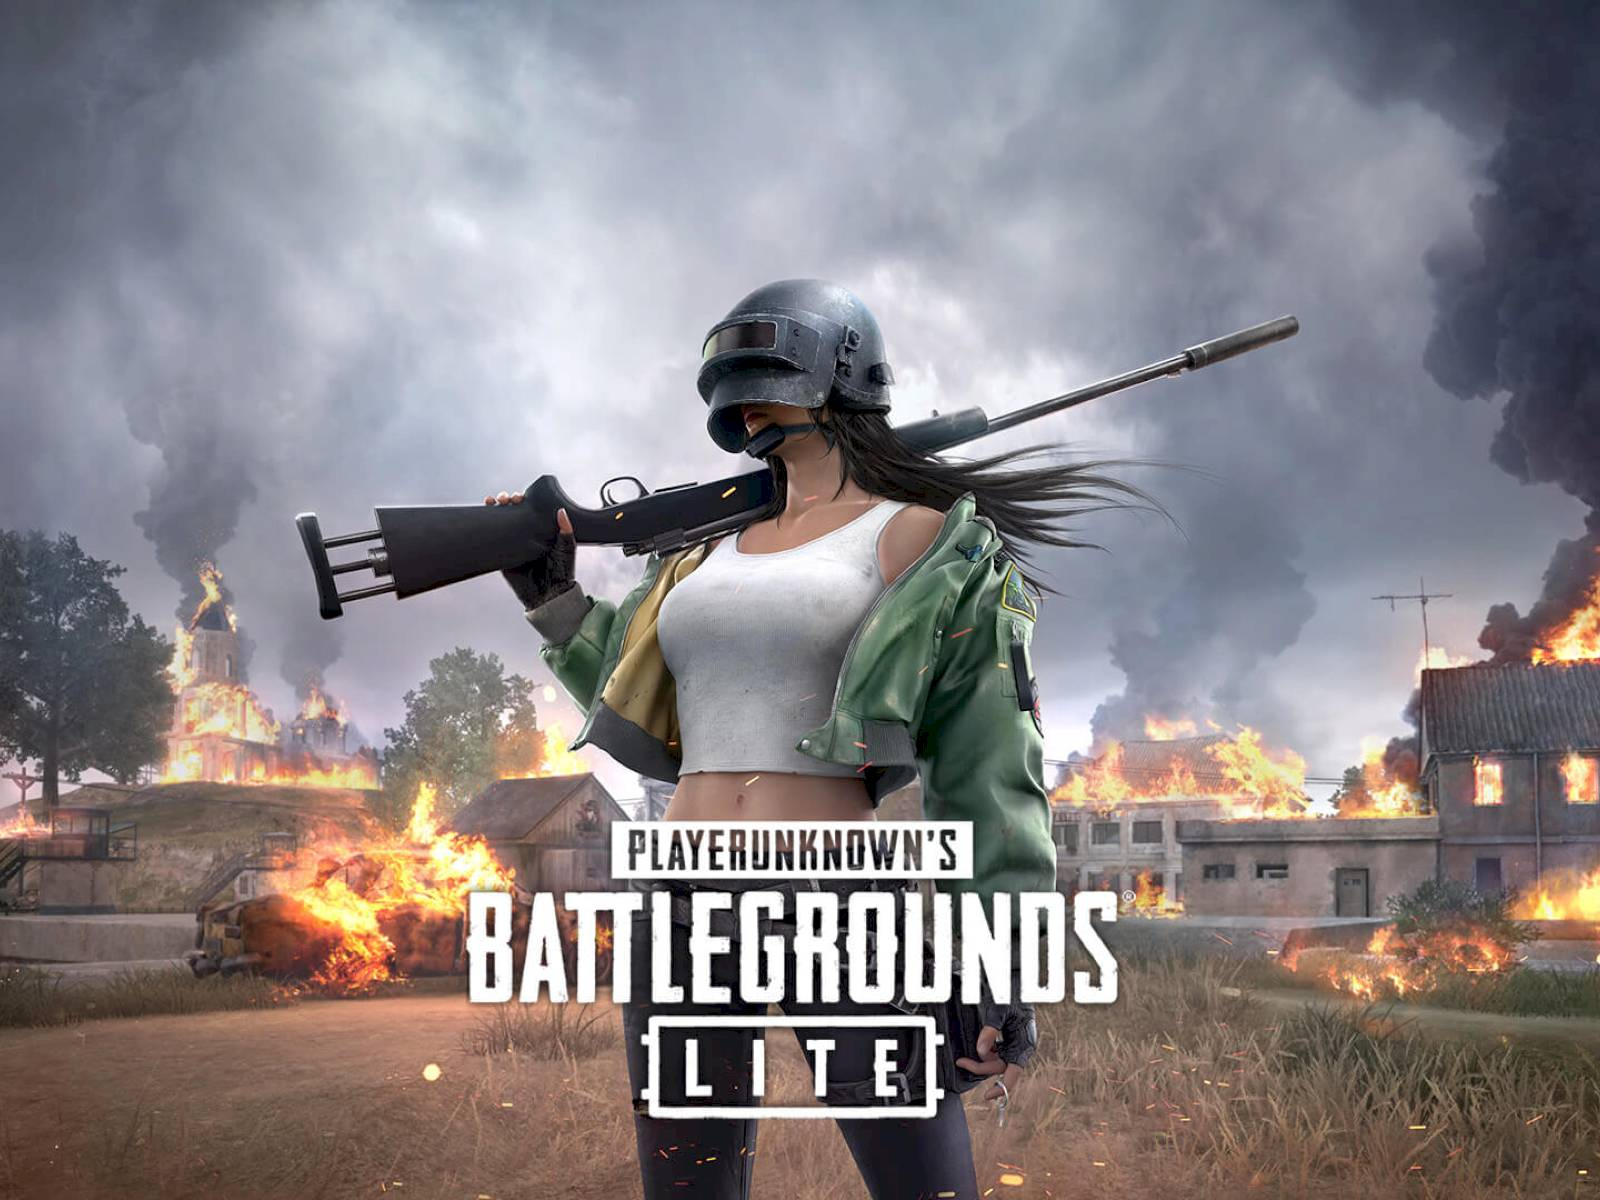 Pubg Lite 100 + 60 Battle Coin